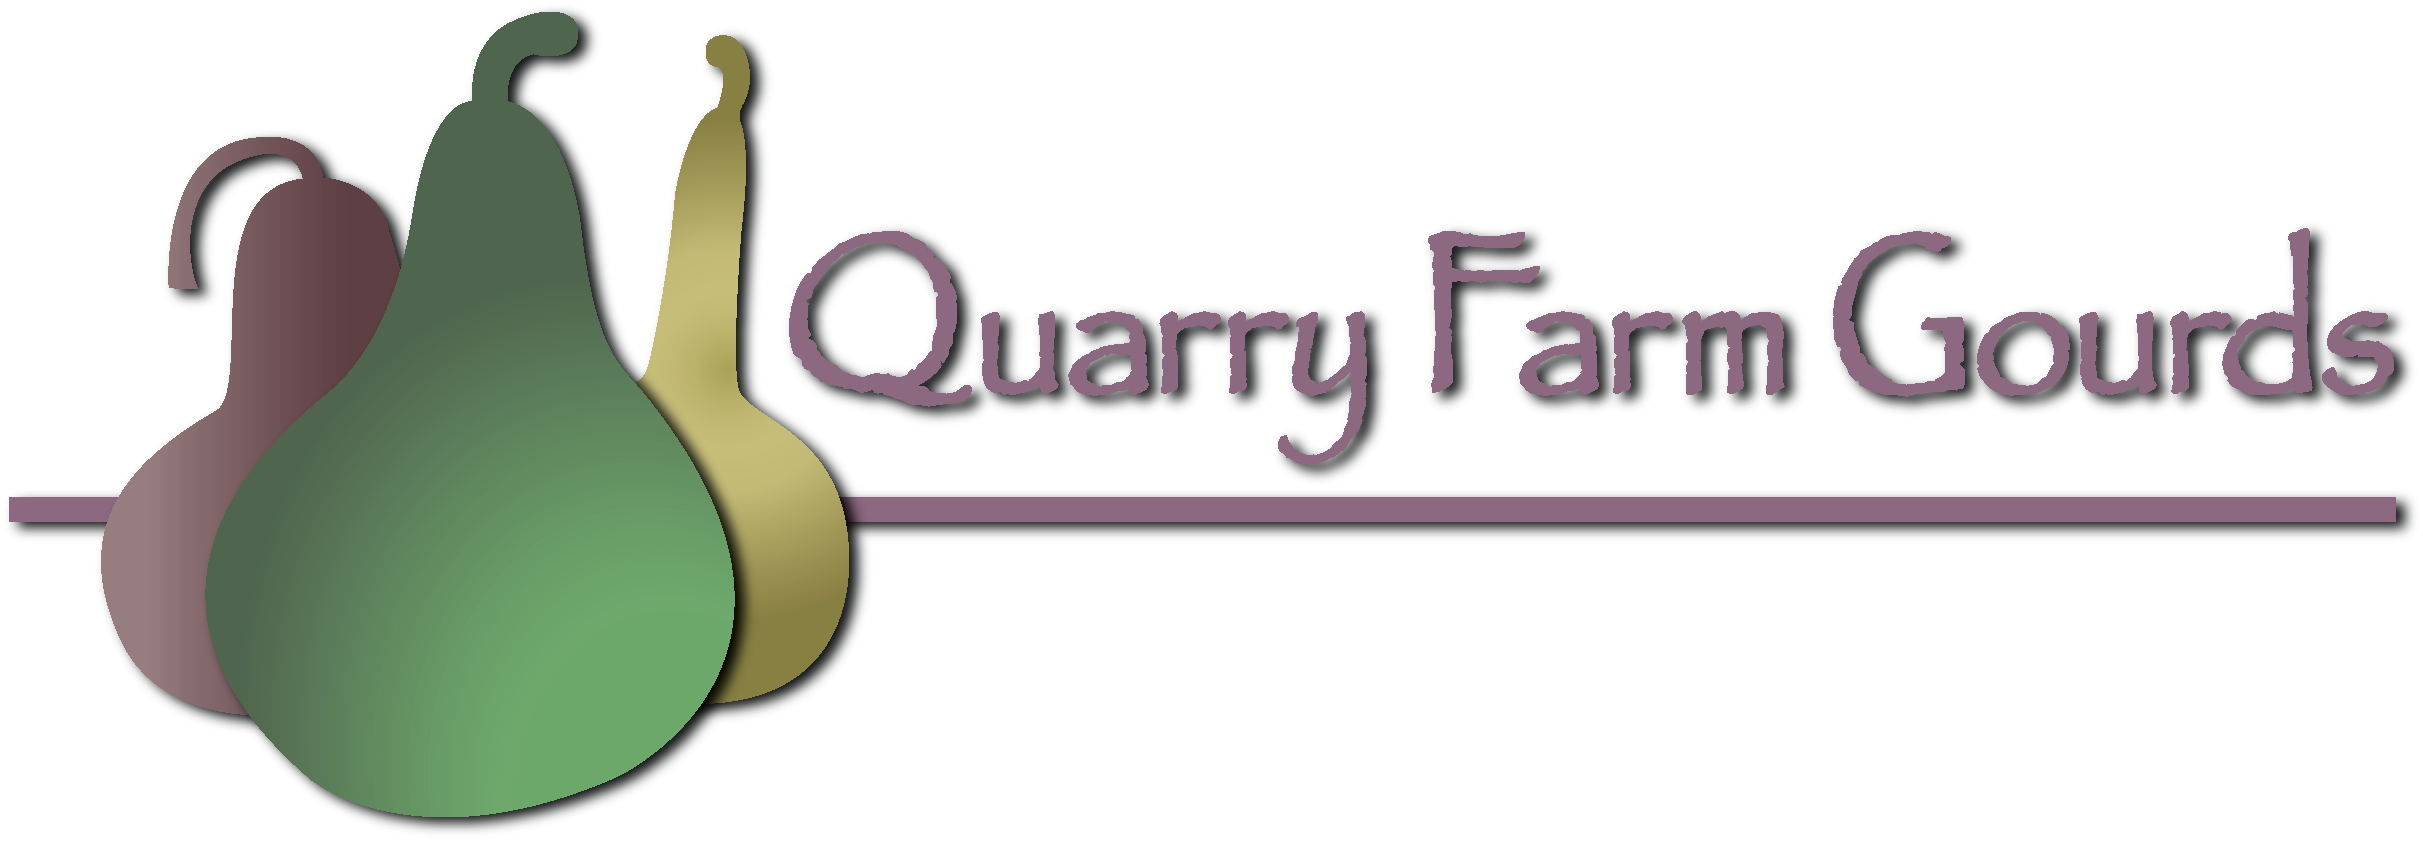 Quarry Farm Gourds